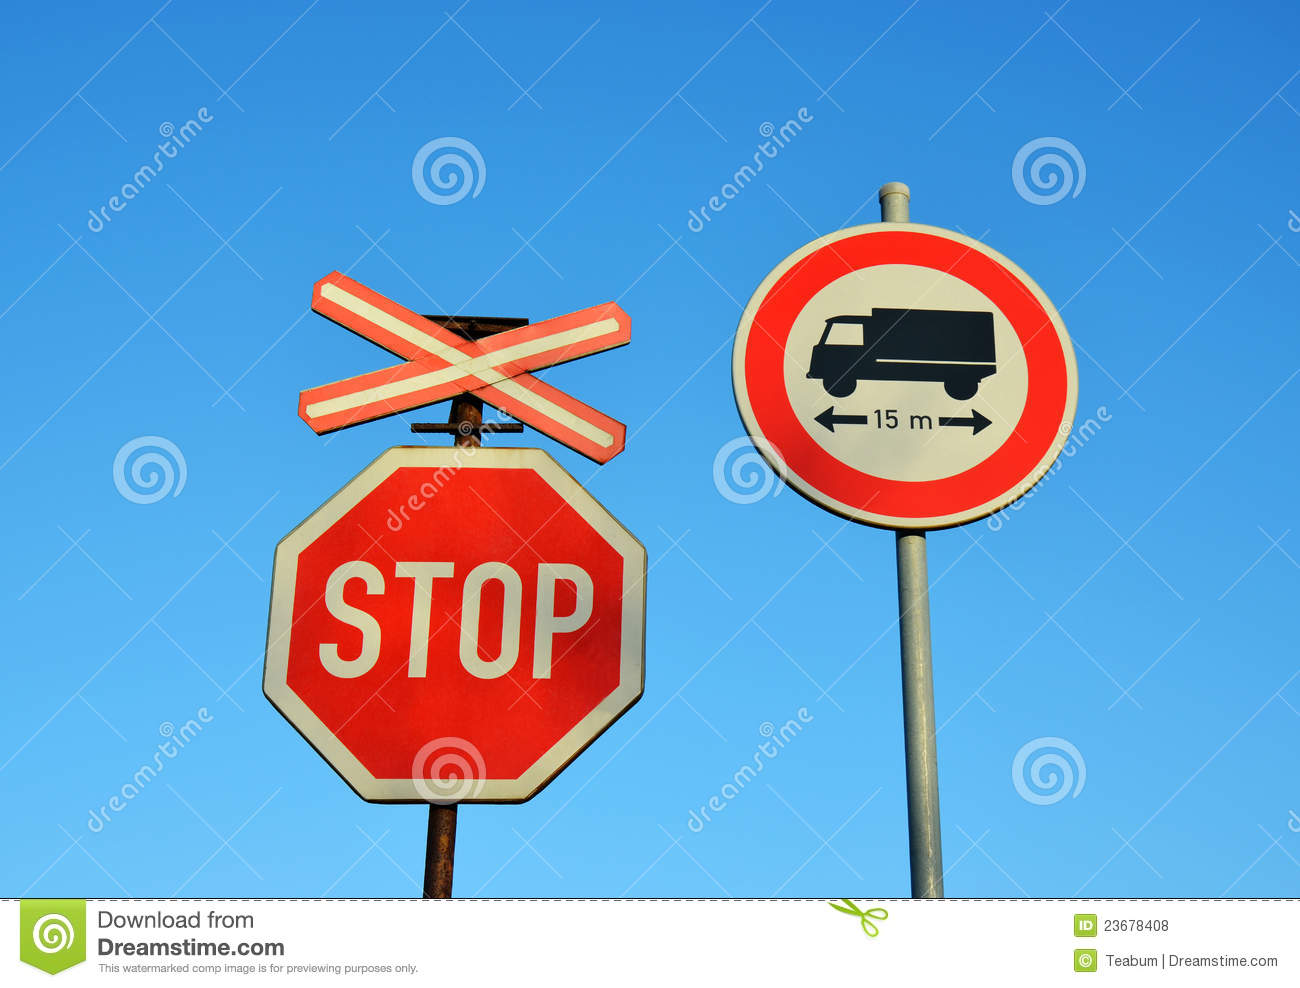 purpose of sop signs